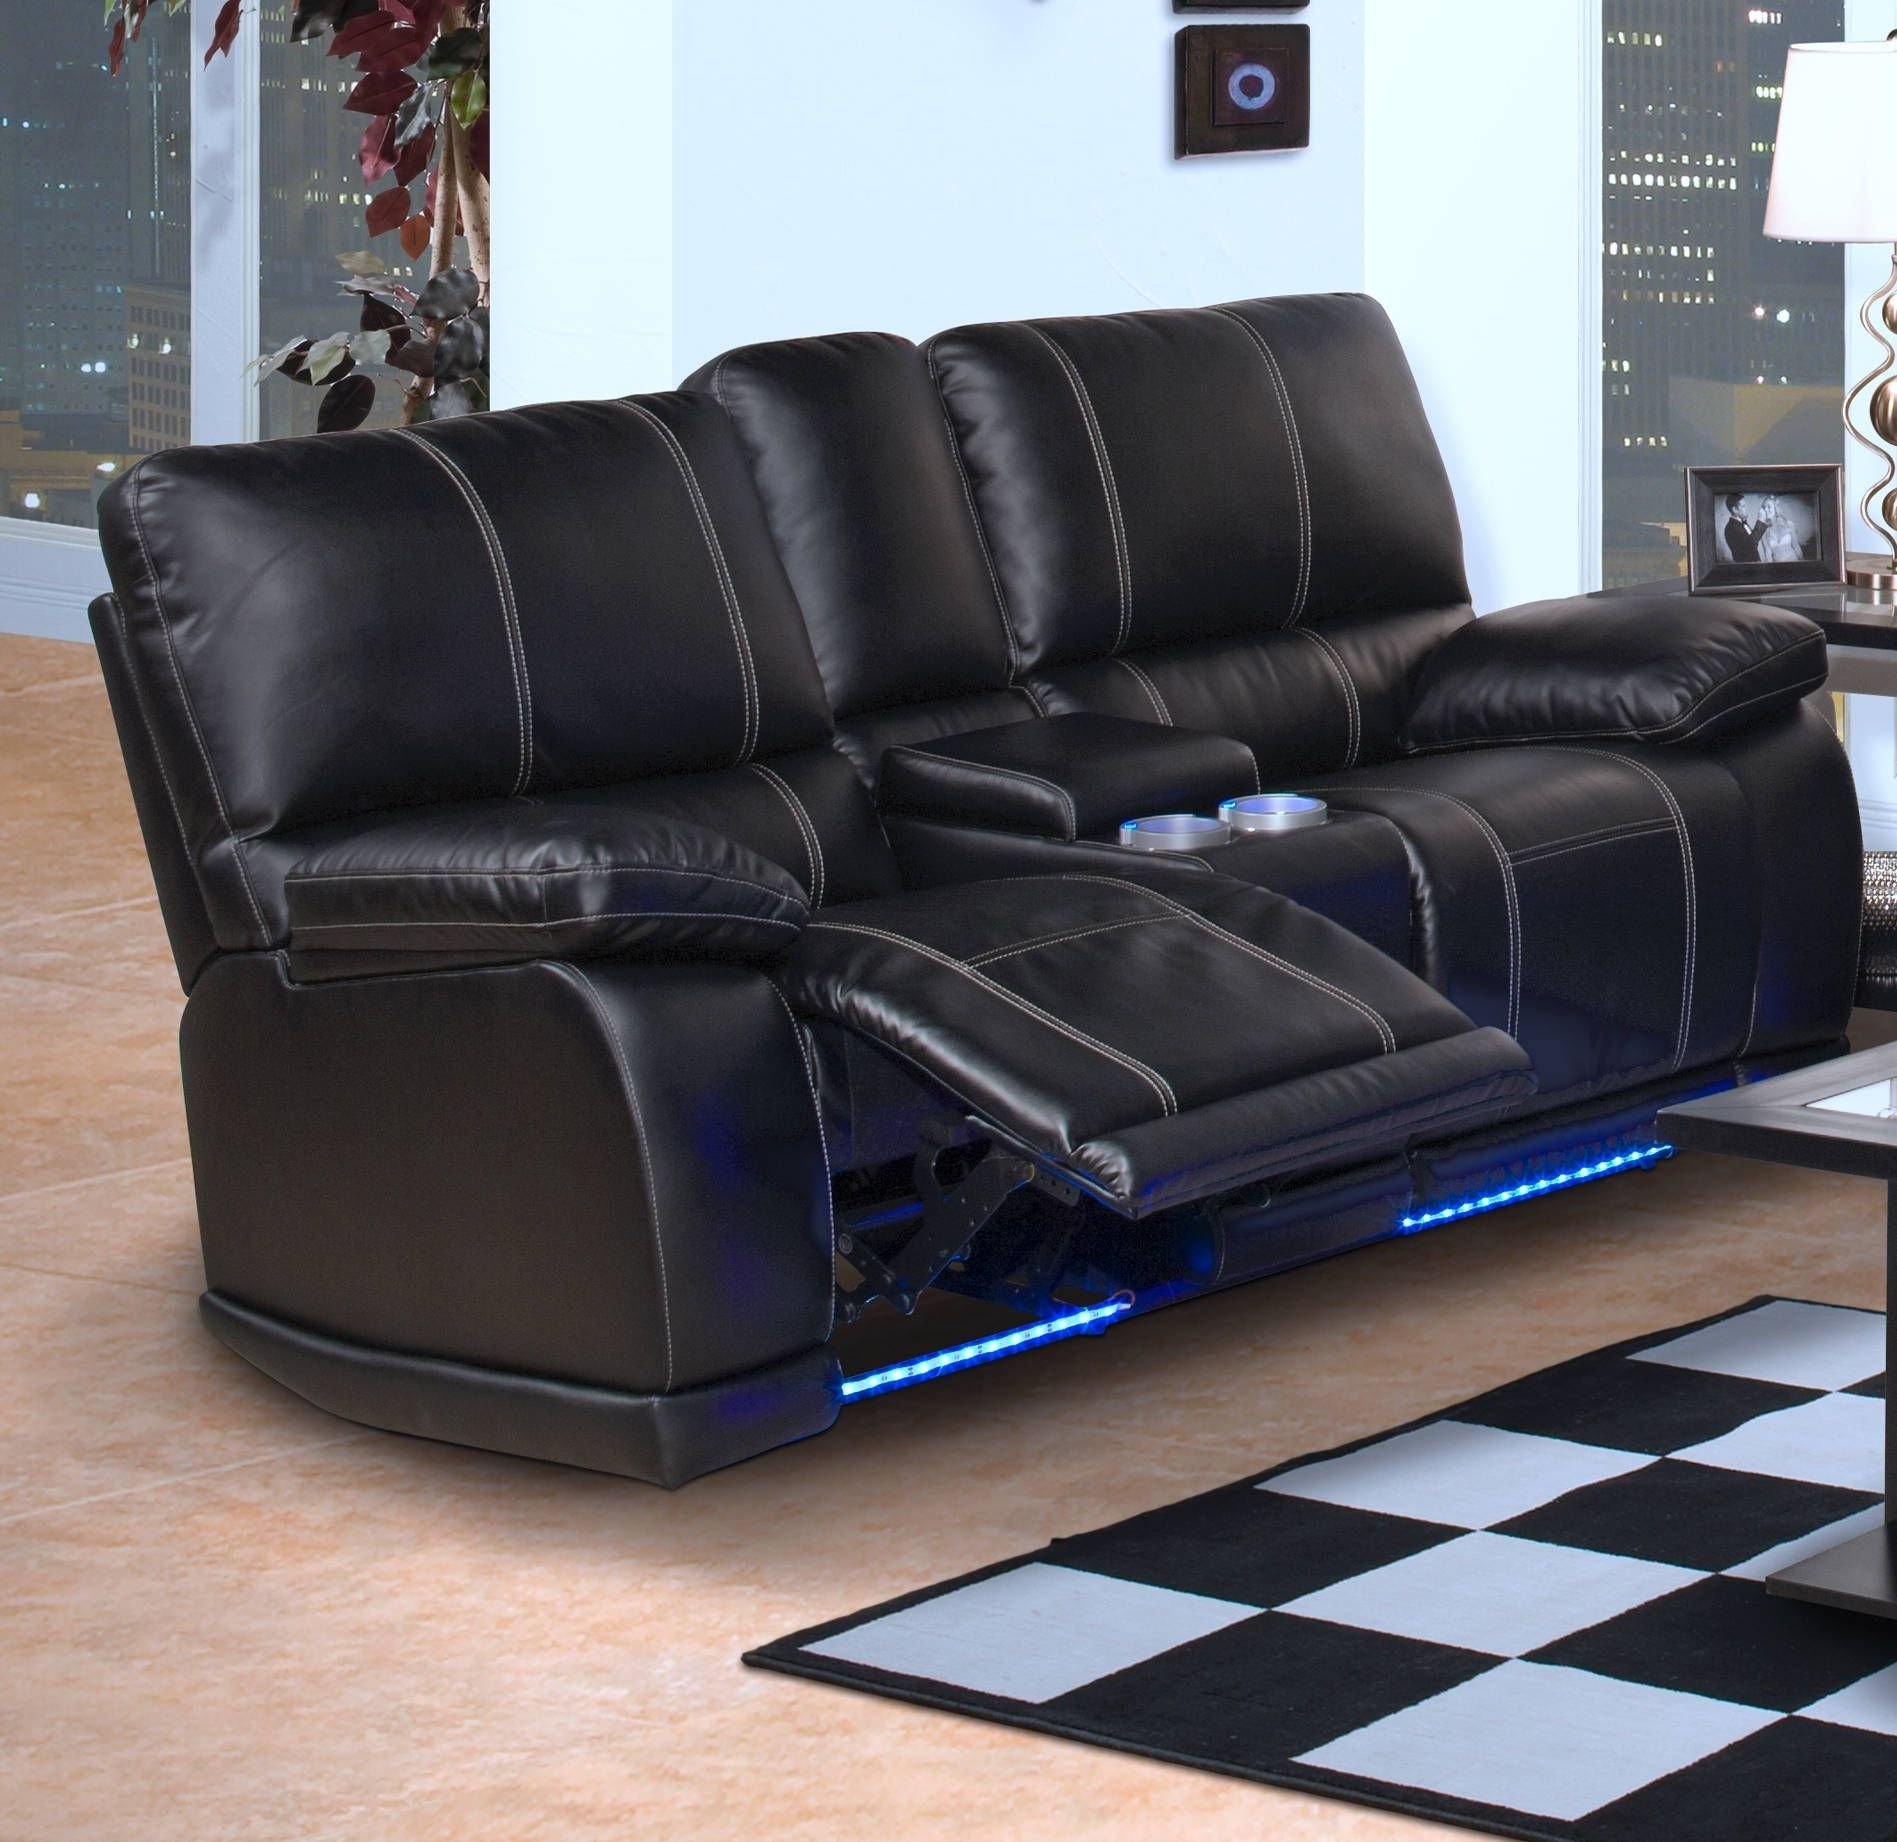 Black Reclining Sofa With Console Reupholster A Uk Electra Bonded Leather Hardwood Dual Recliner Loveseat